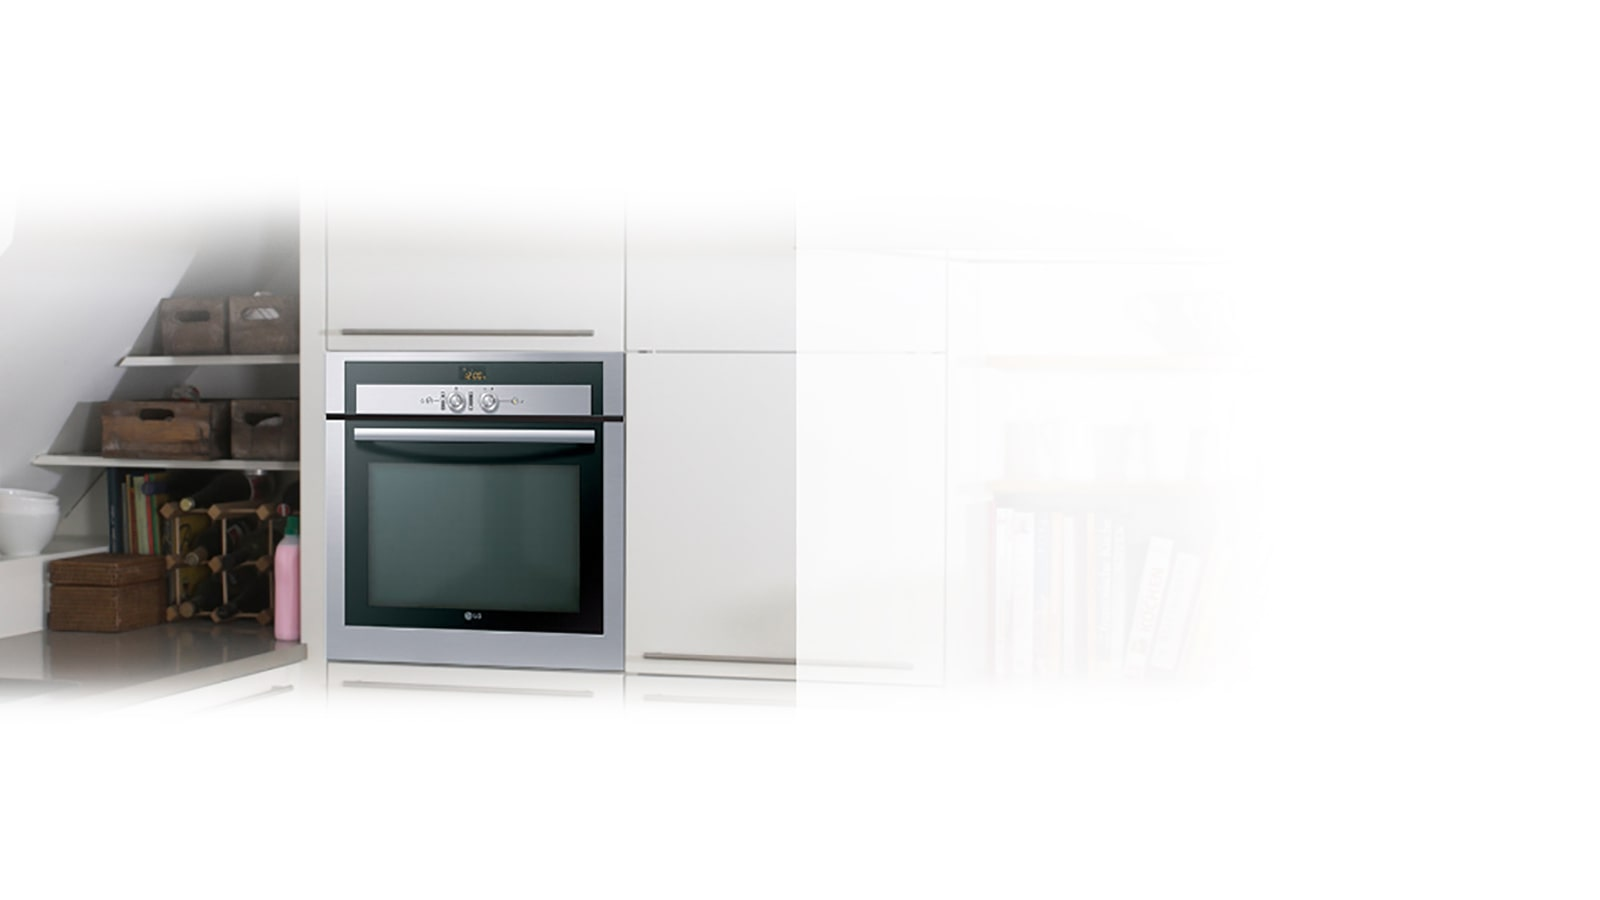 60 cm Electric Oven